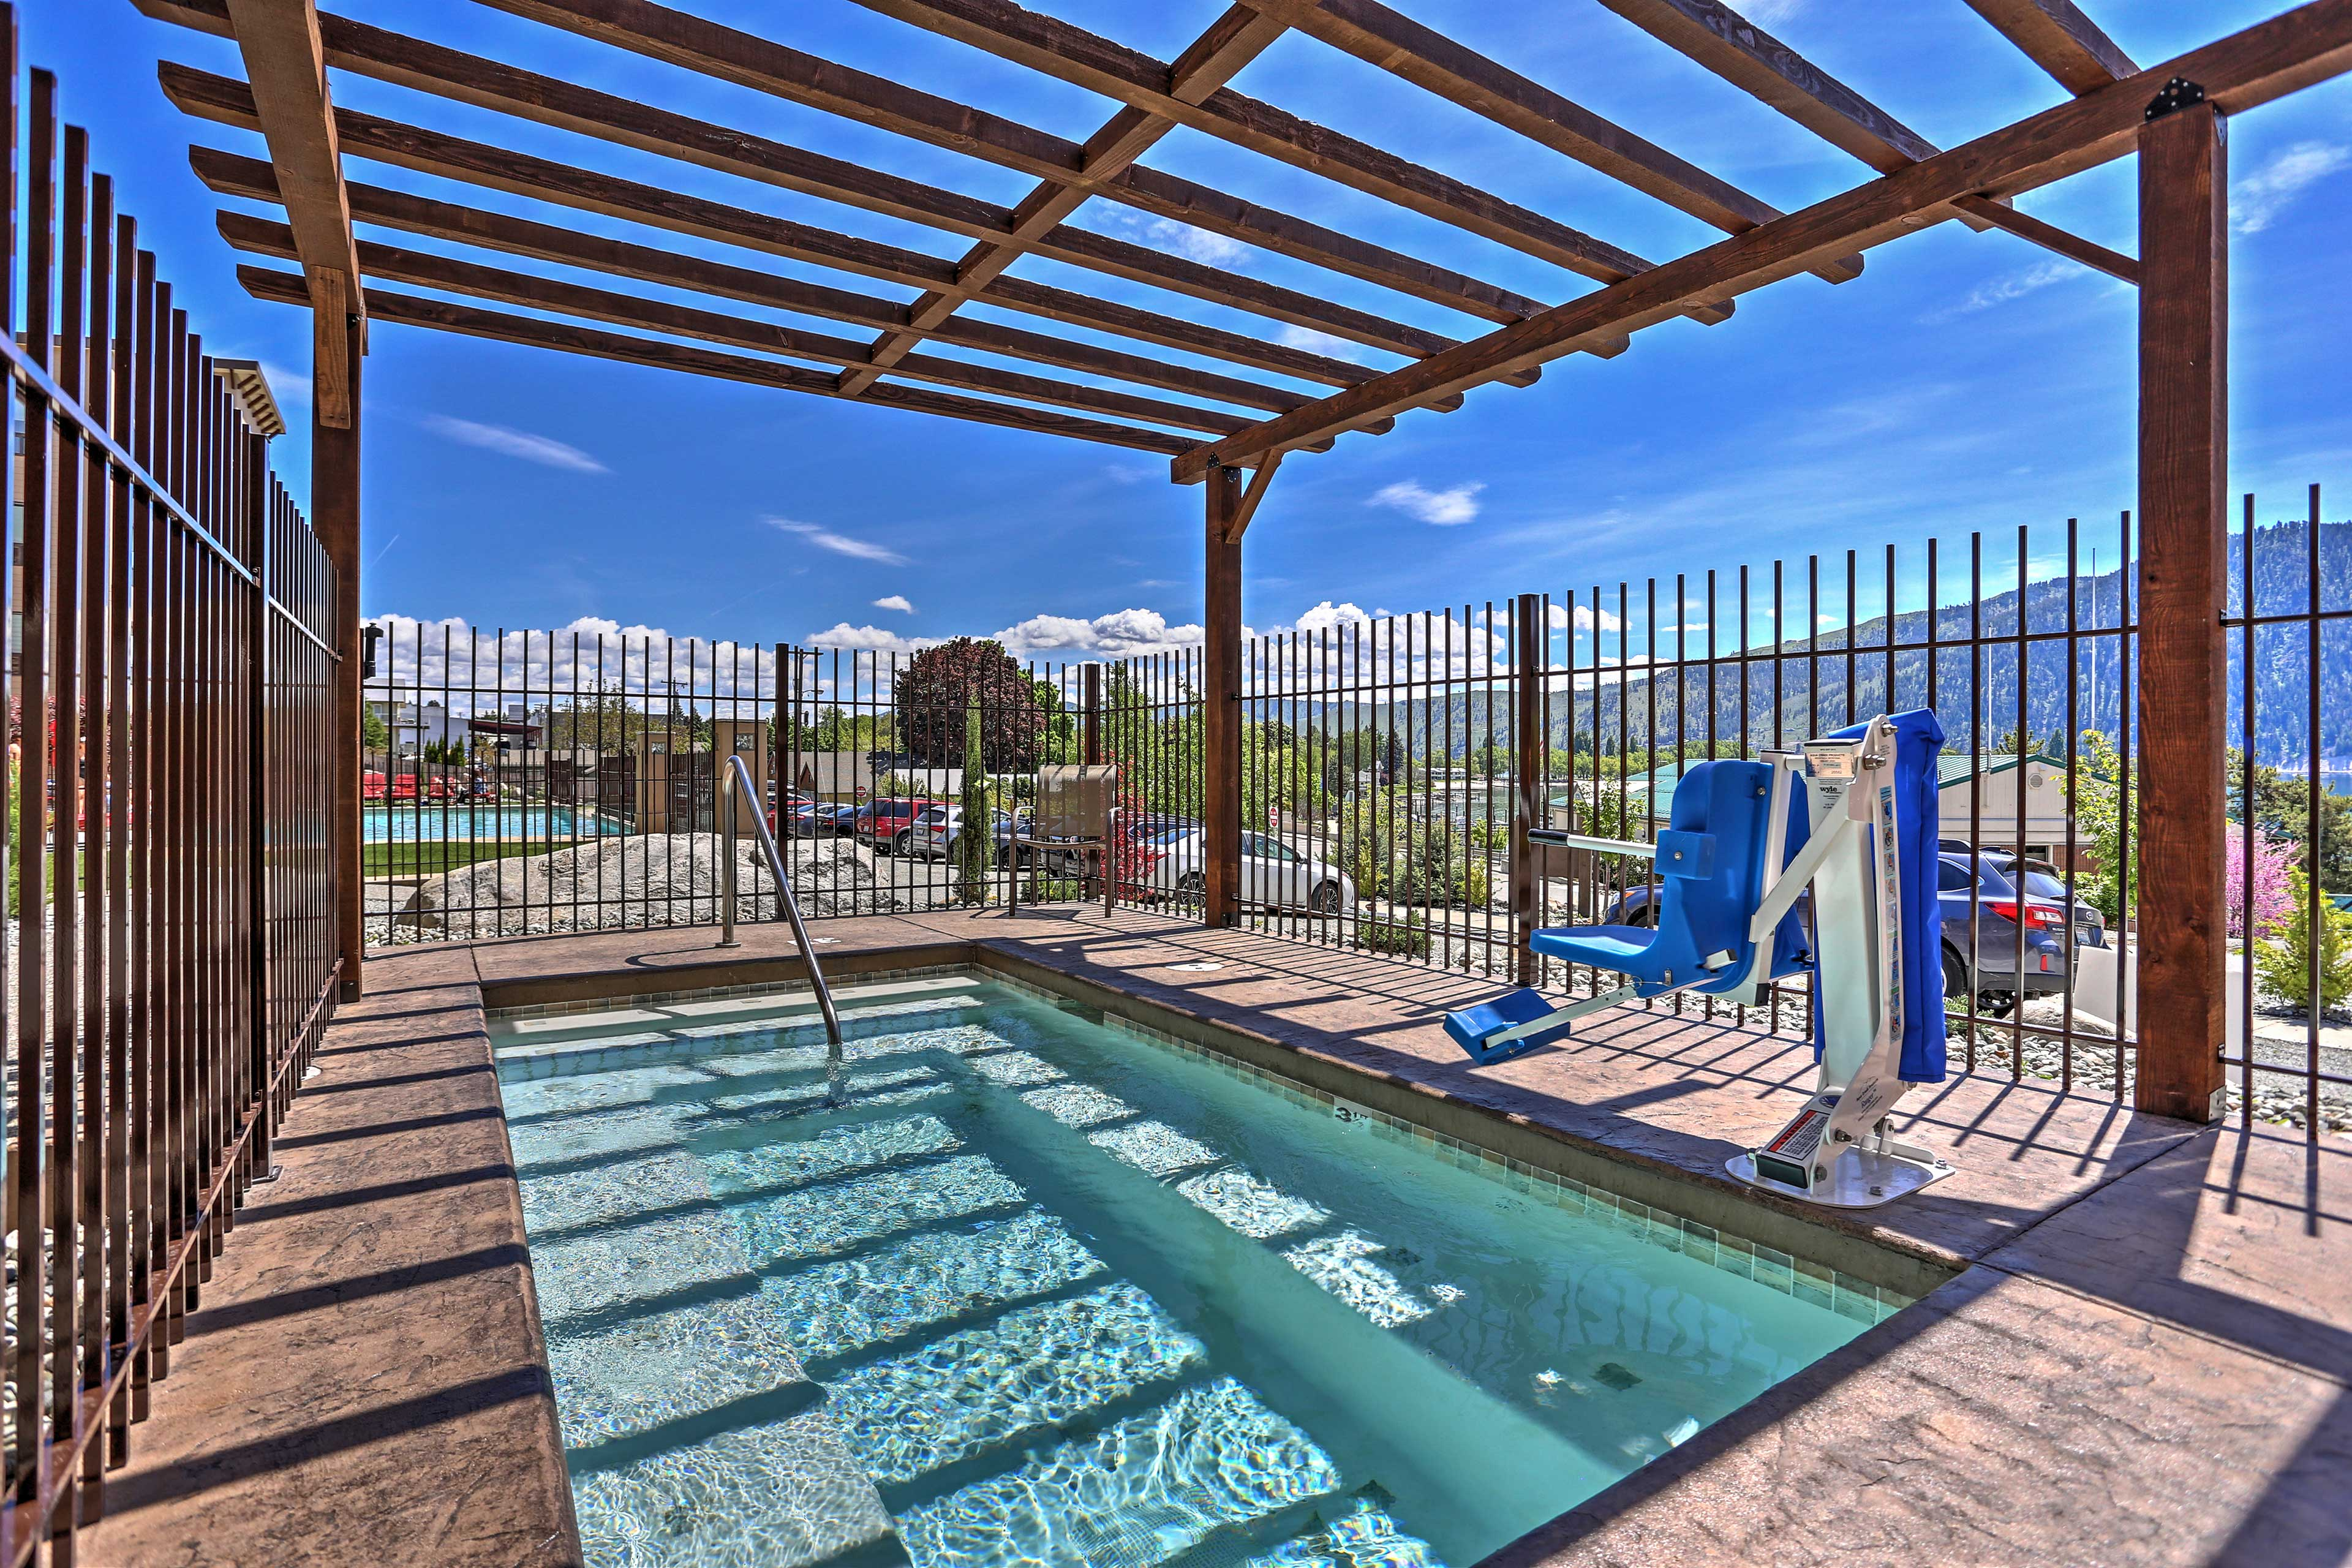 With a community pool, hot tub and wading area - this deck is a treat for all!